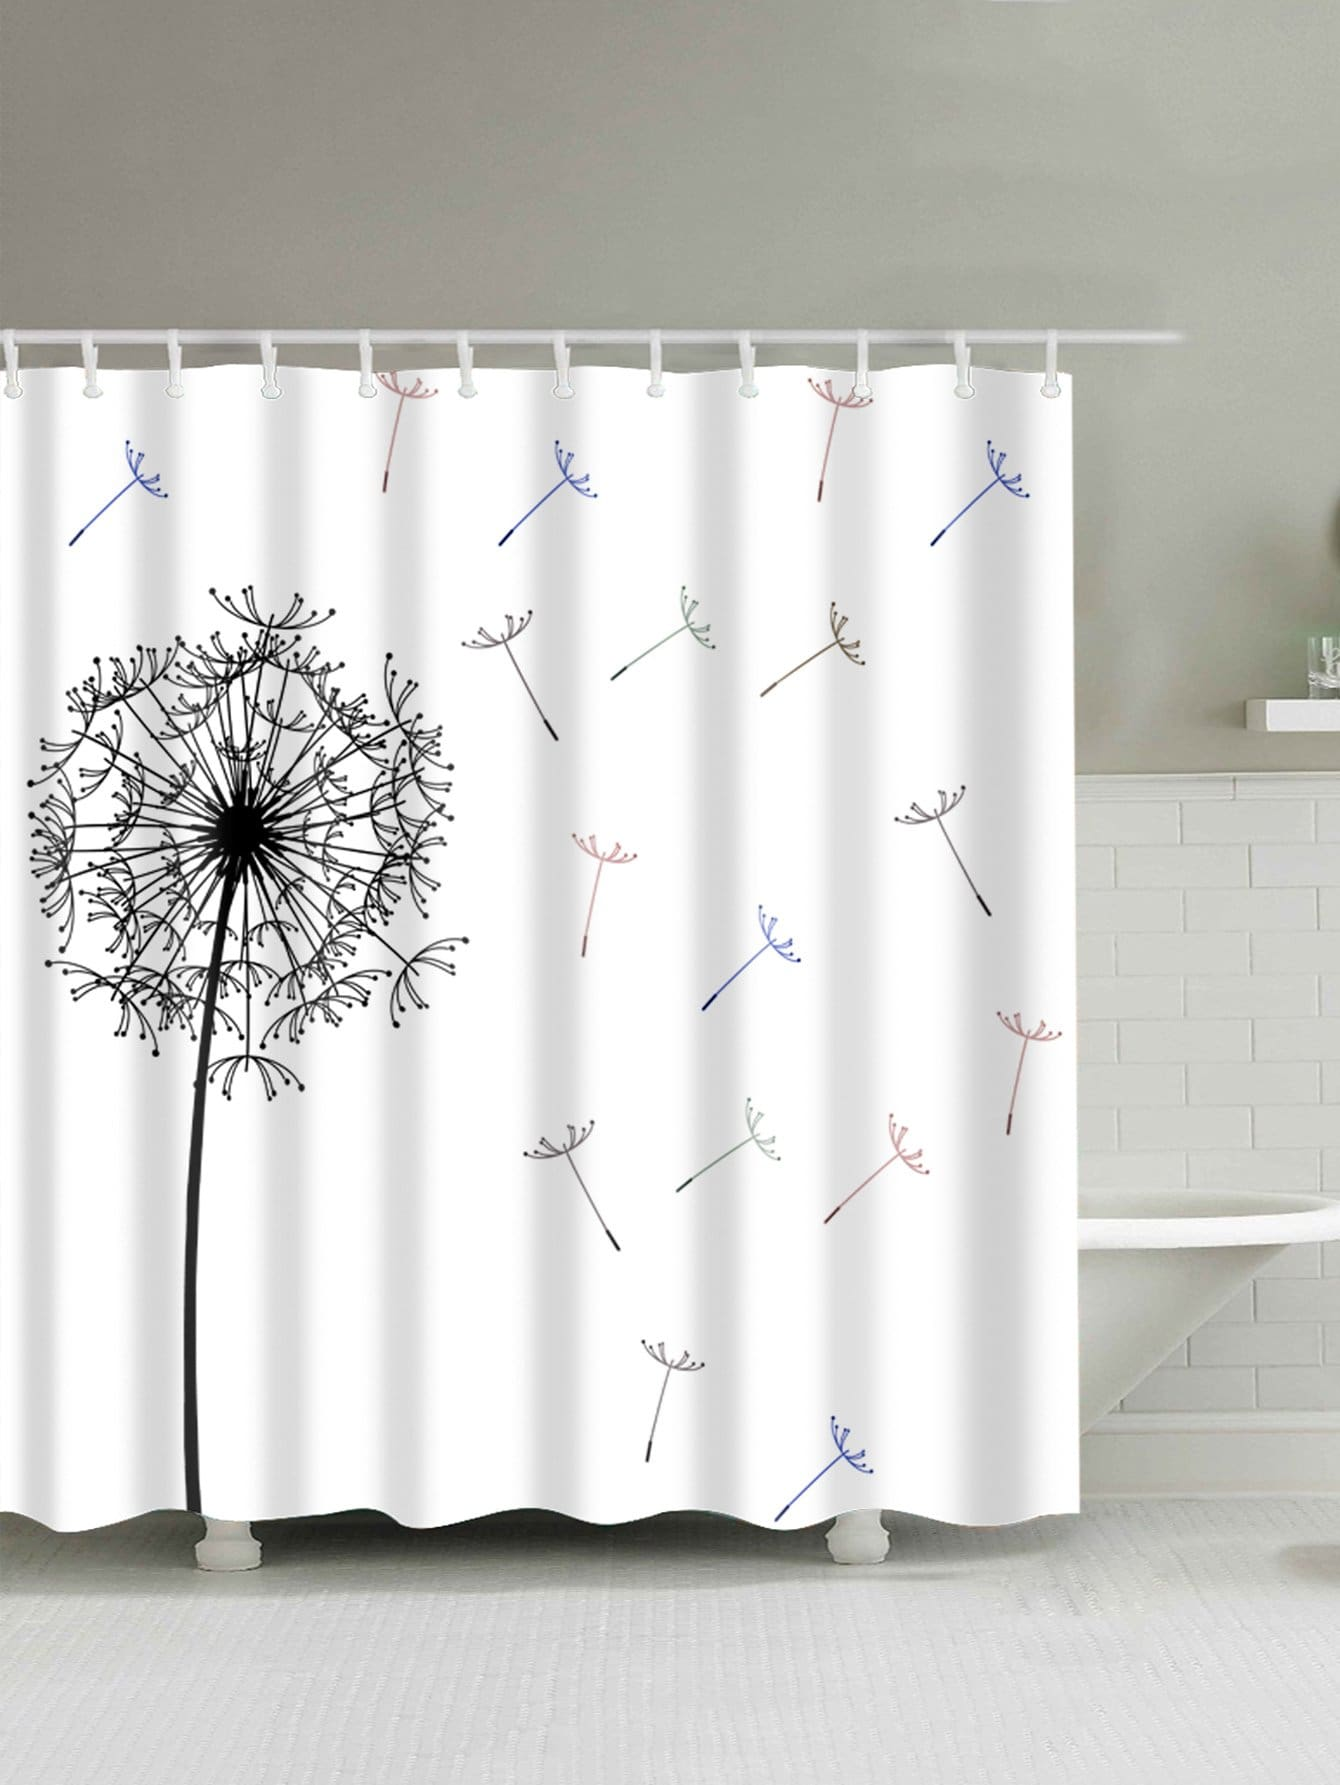 Dandelion Shower Curtain With 12pcs Hook total 12pcs filters